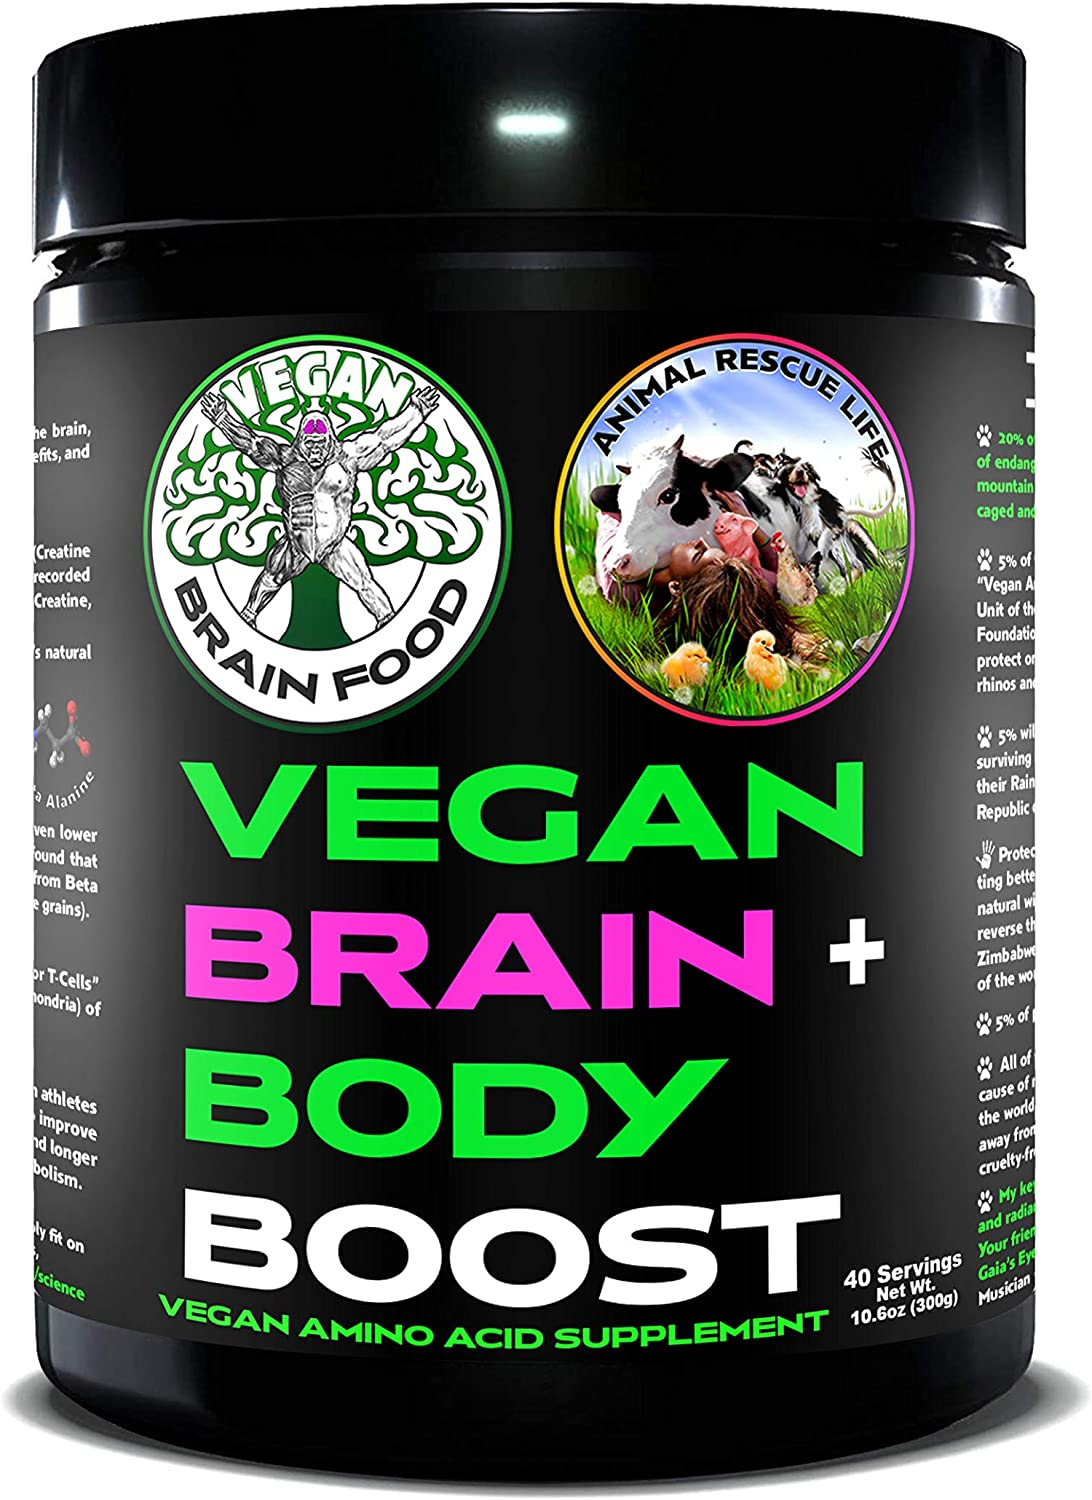 Vegan Brain & Body Boost - 40 Servings | Anti-Aging | Fat Burning & Physical Fitness | Immune Boost | Sexual Health | Amino Acids Missing from Plant-Based Diet | Brain Health & Working Intelligence